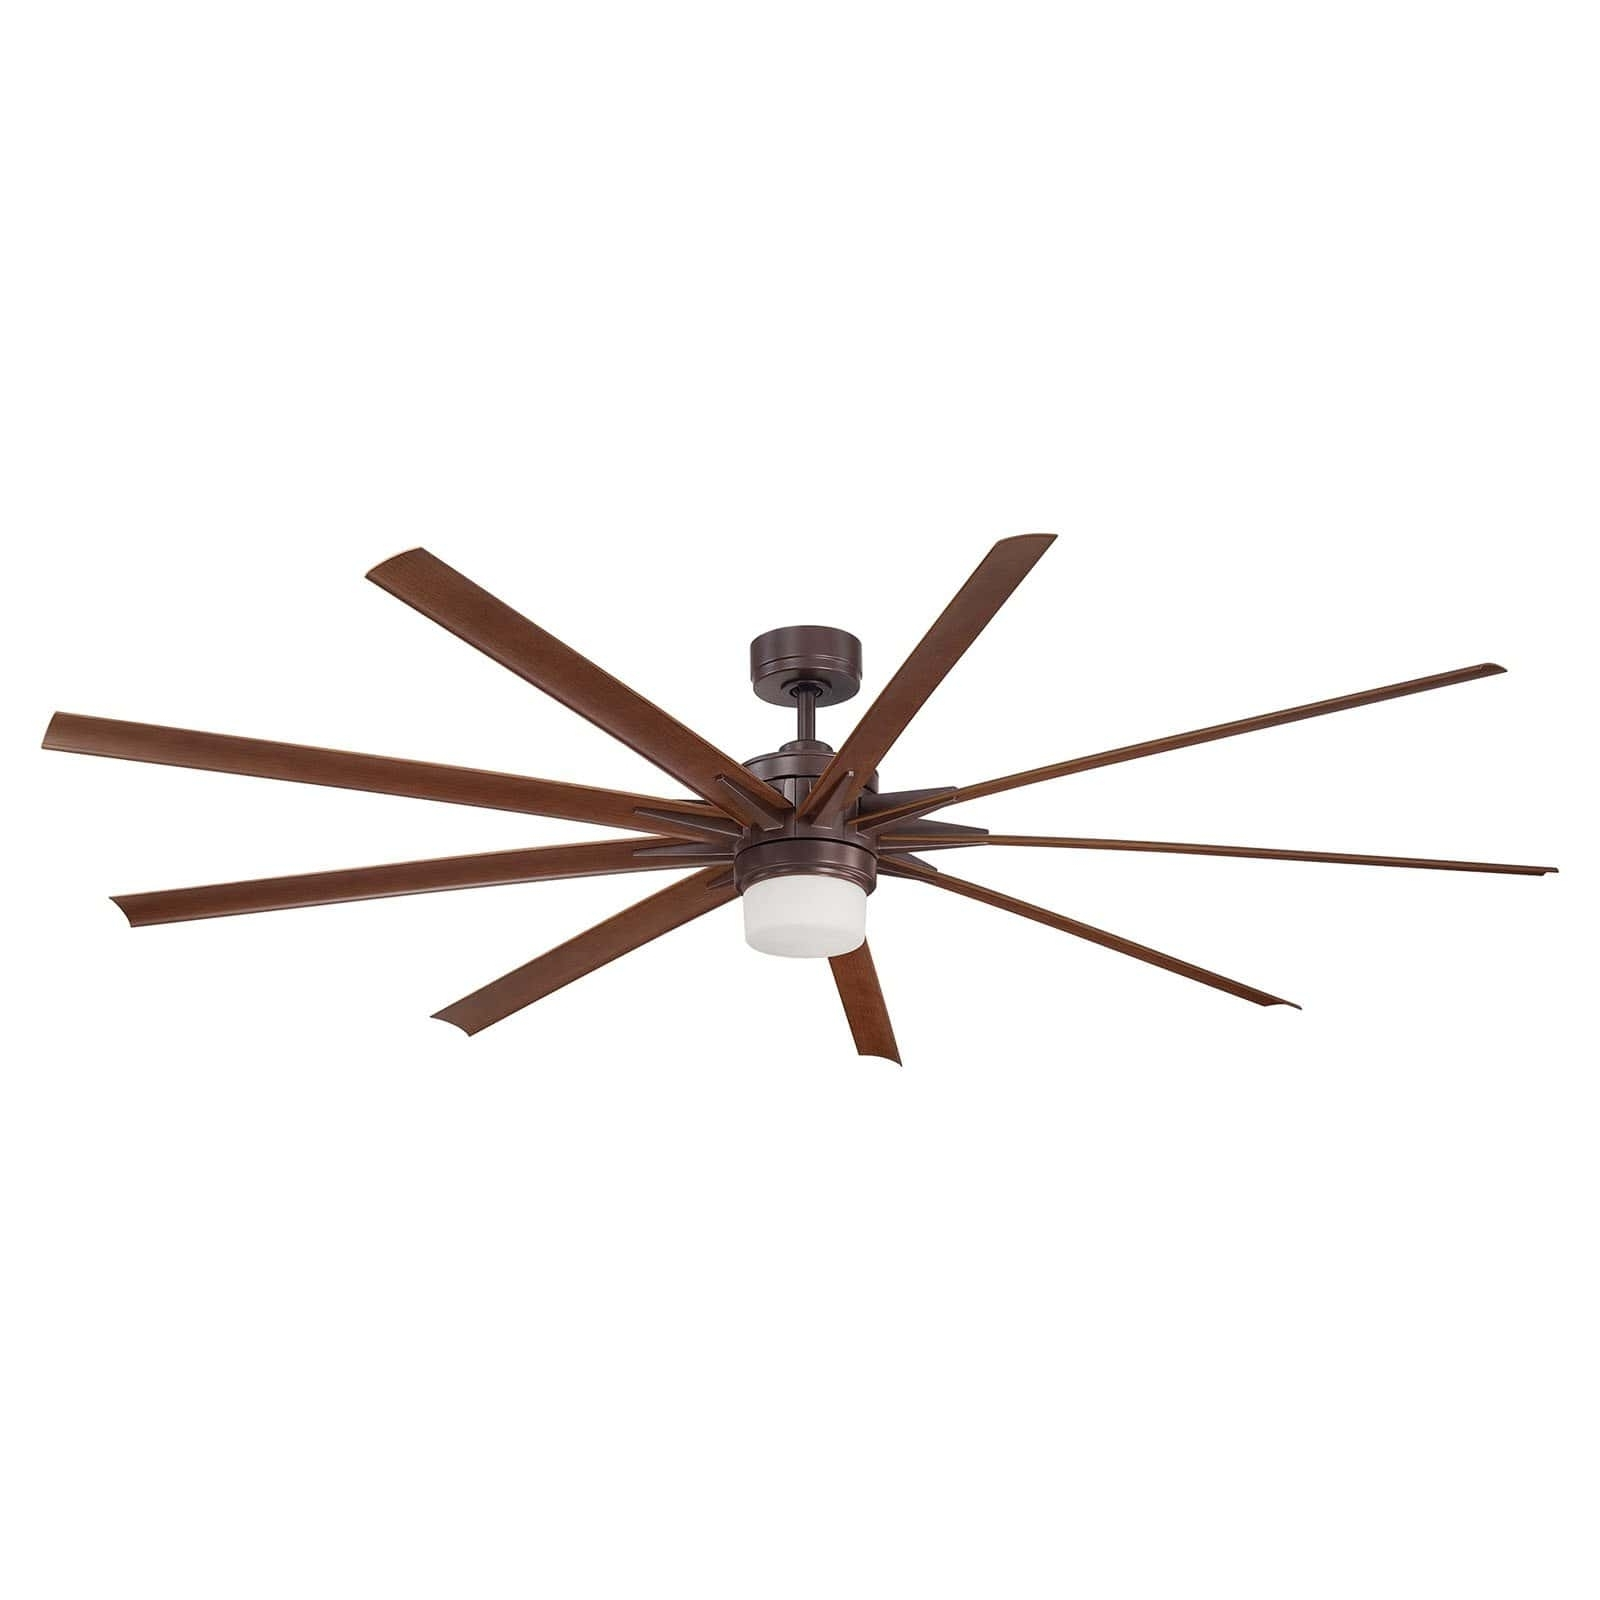 Outdoor Ceiling Fans With Covers Intended For Most Recently Released Outdoor Ceiling Fan With Light Type — Sherizampelli Landscape (View 16 of 20)